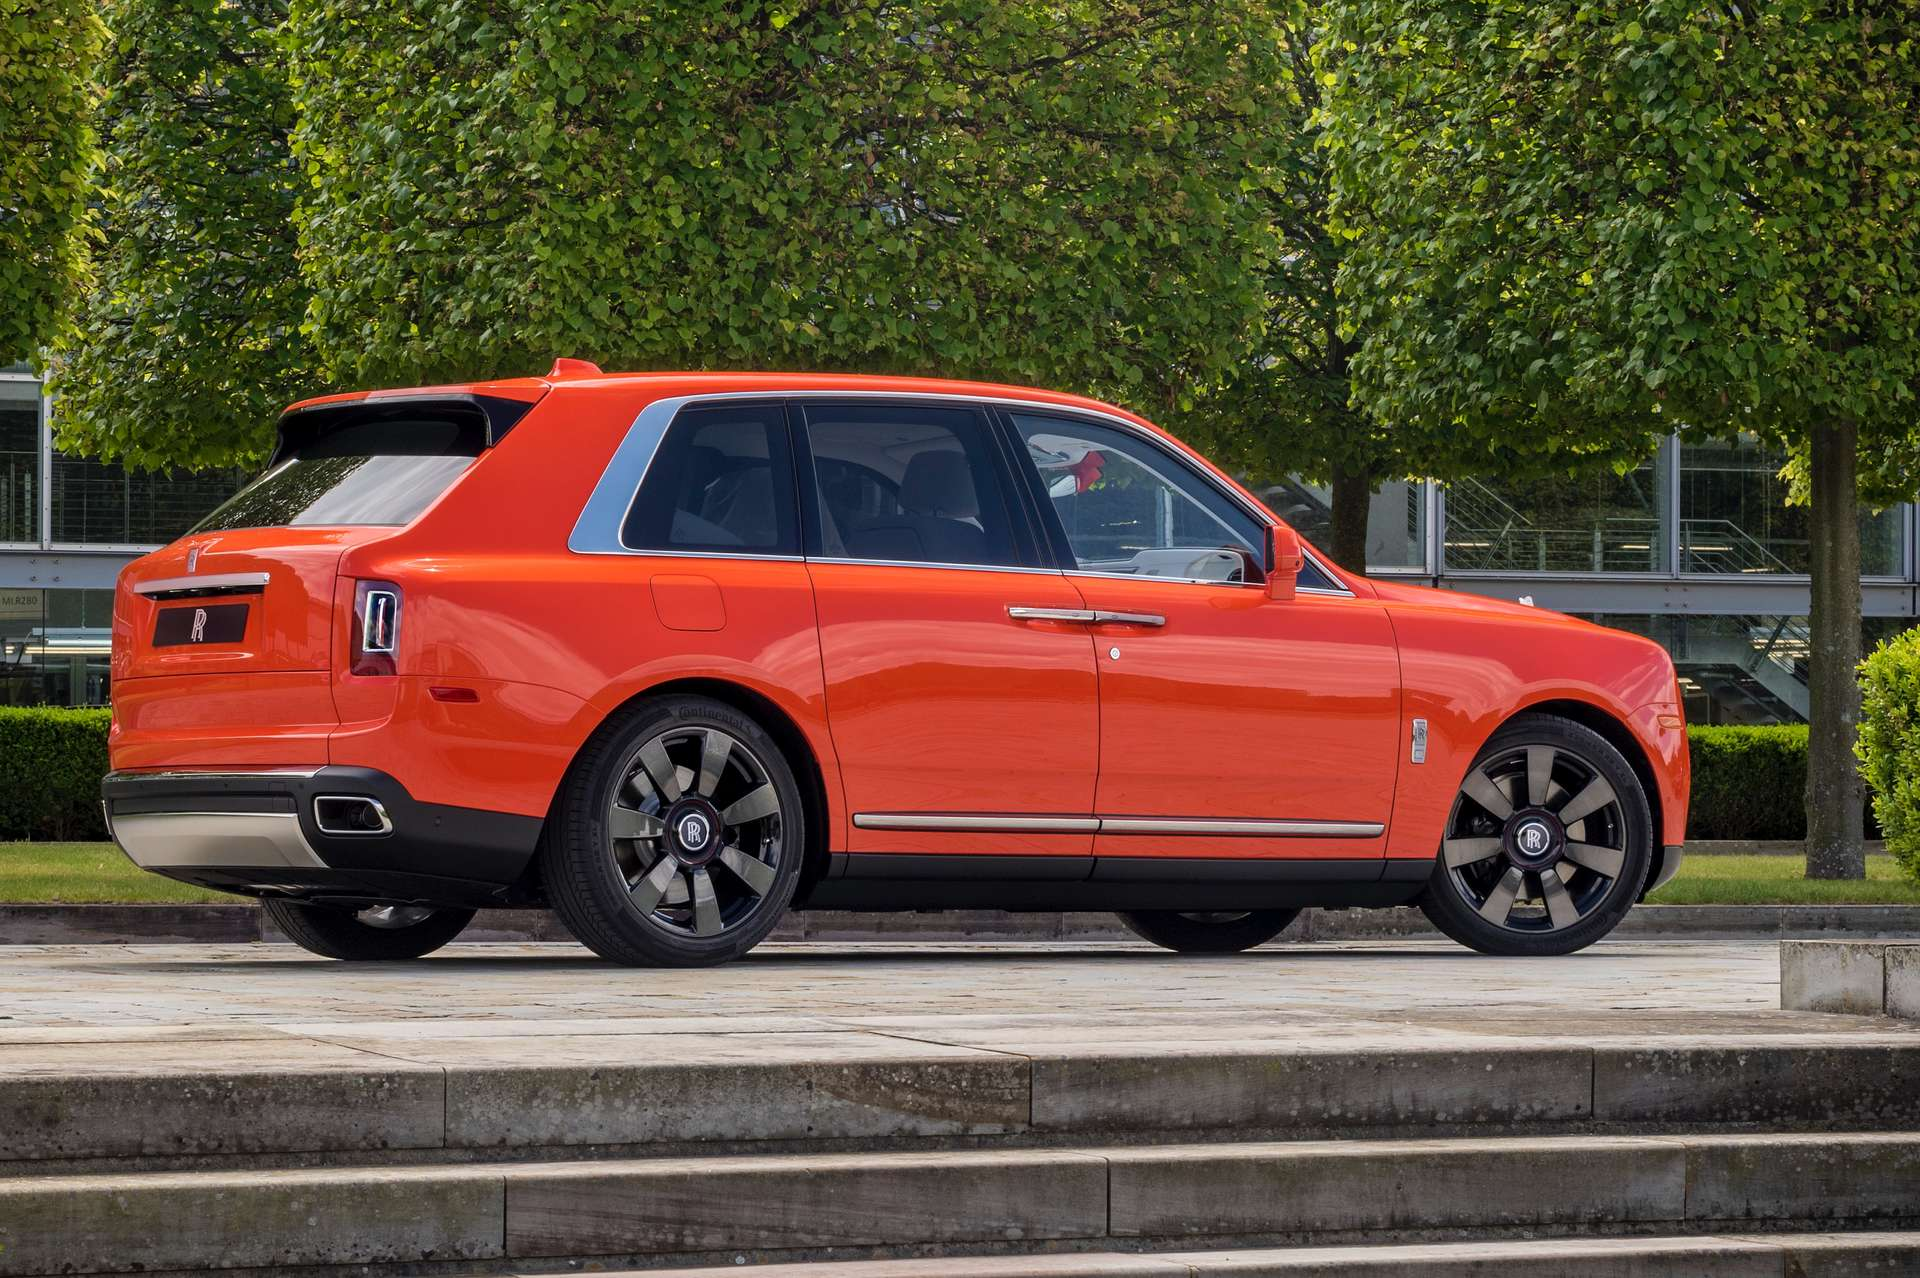 The exterior side-profile of the Rolls-Royce Fux Orange Cullinan.